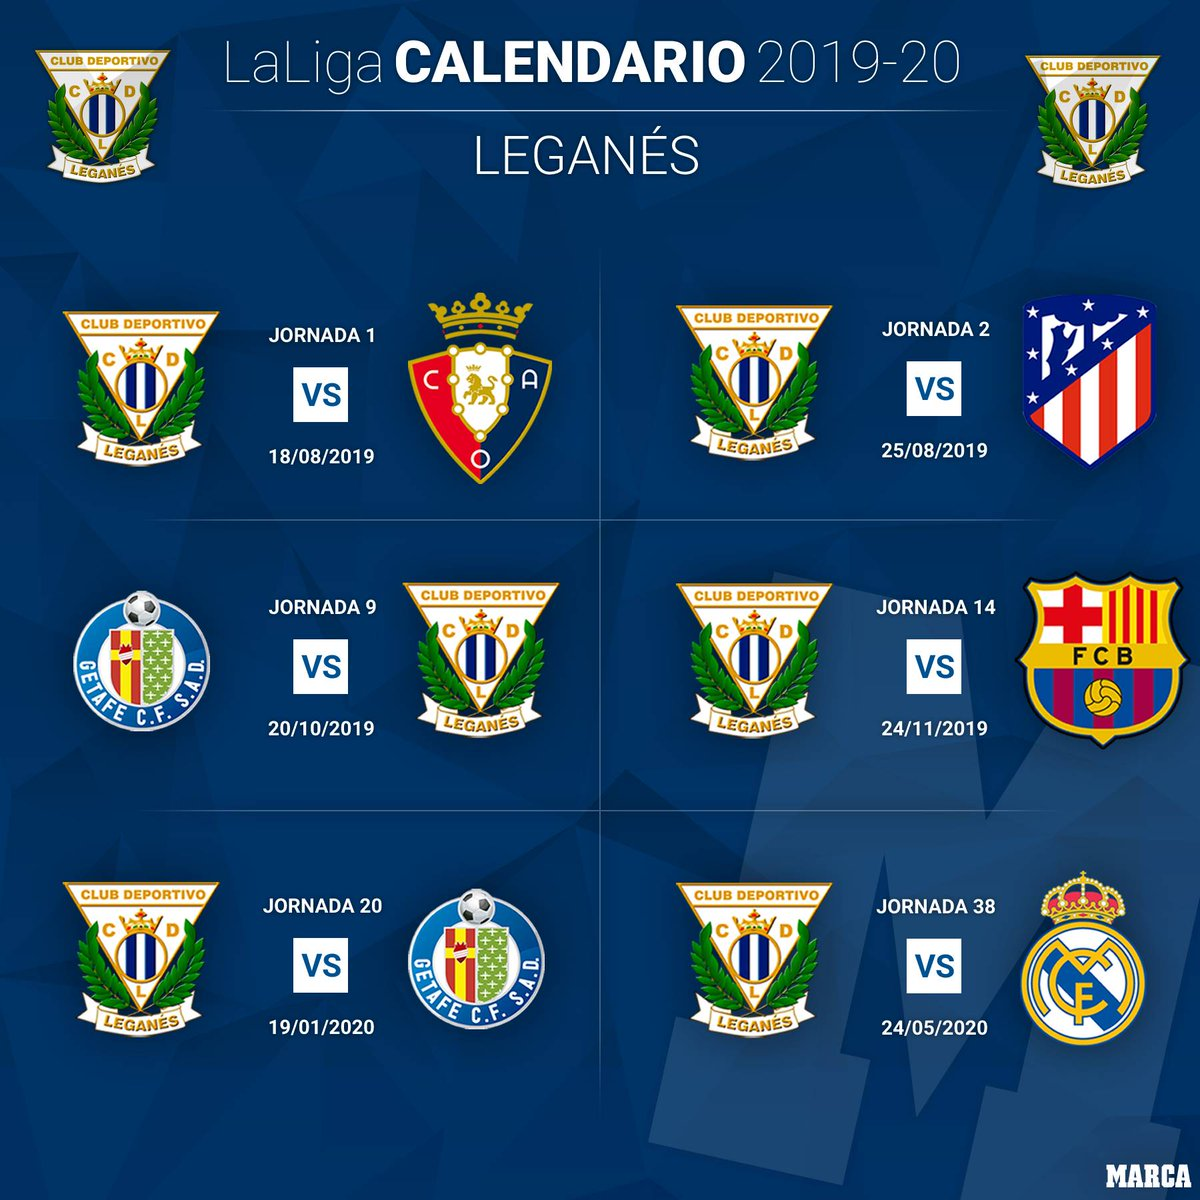 Calendario Del Villarreal.A Thread Written By Marca Abrimos Hilo Para Repasar Lo